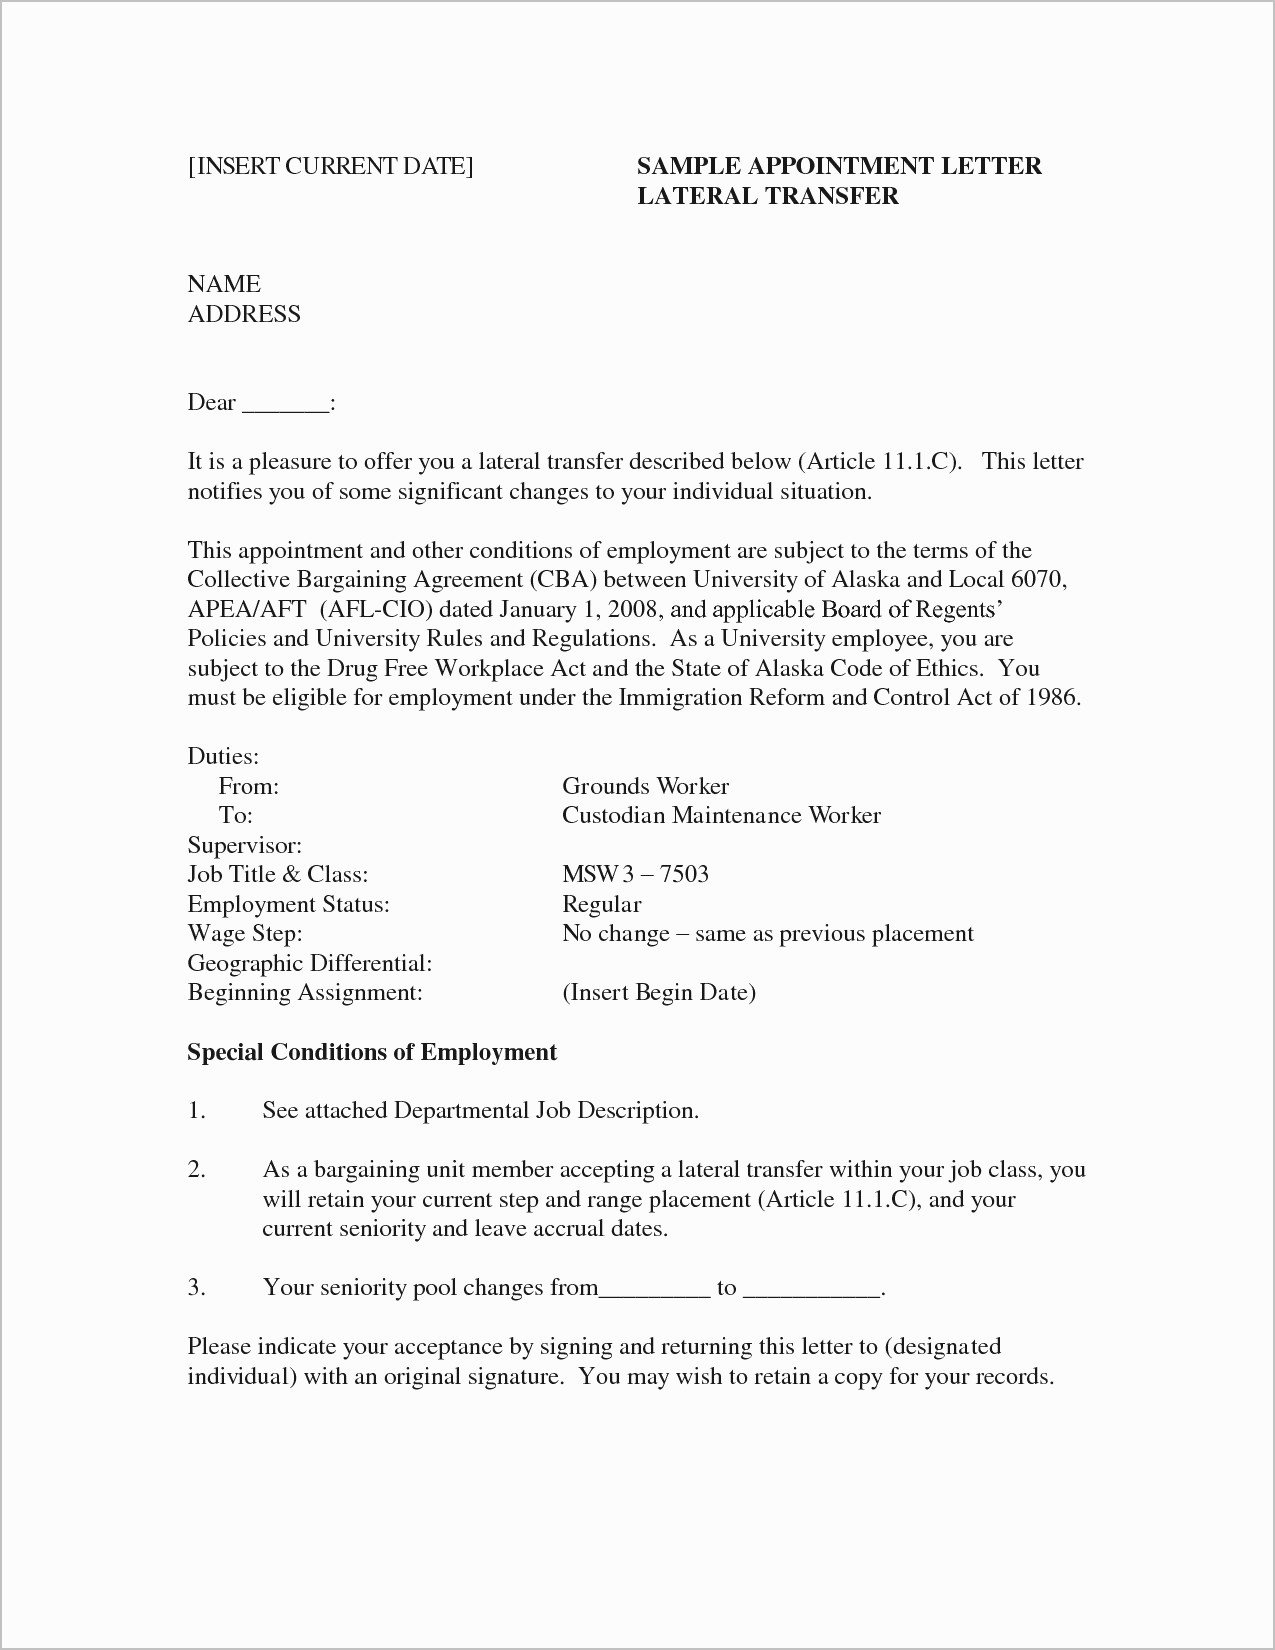 Personal Loan Template Letter - Elegant Letter format for Personal Loan Requesting New Ideas Write A